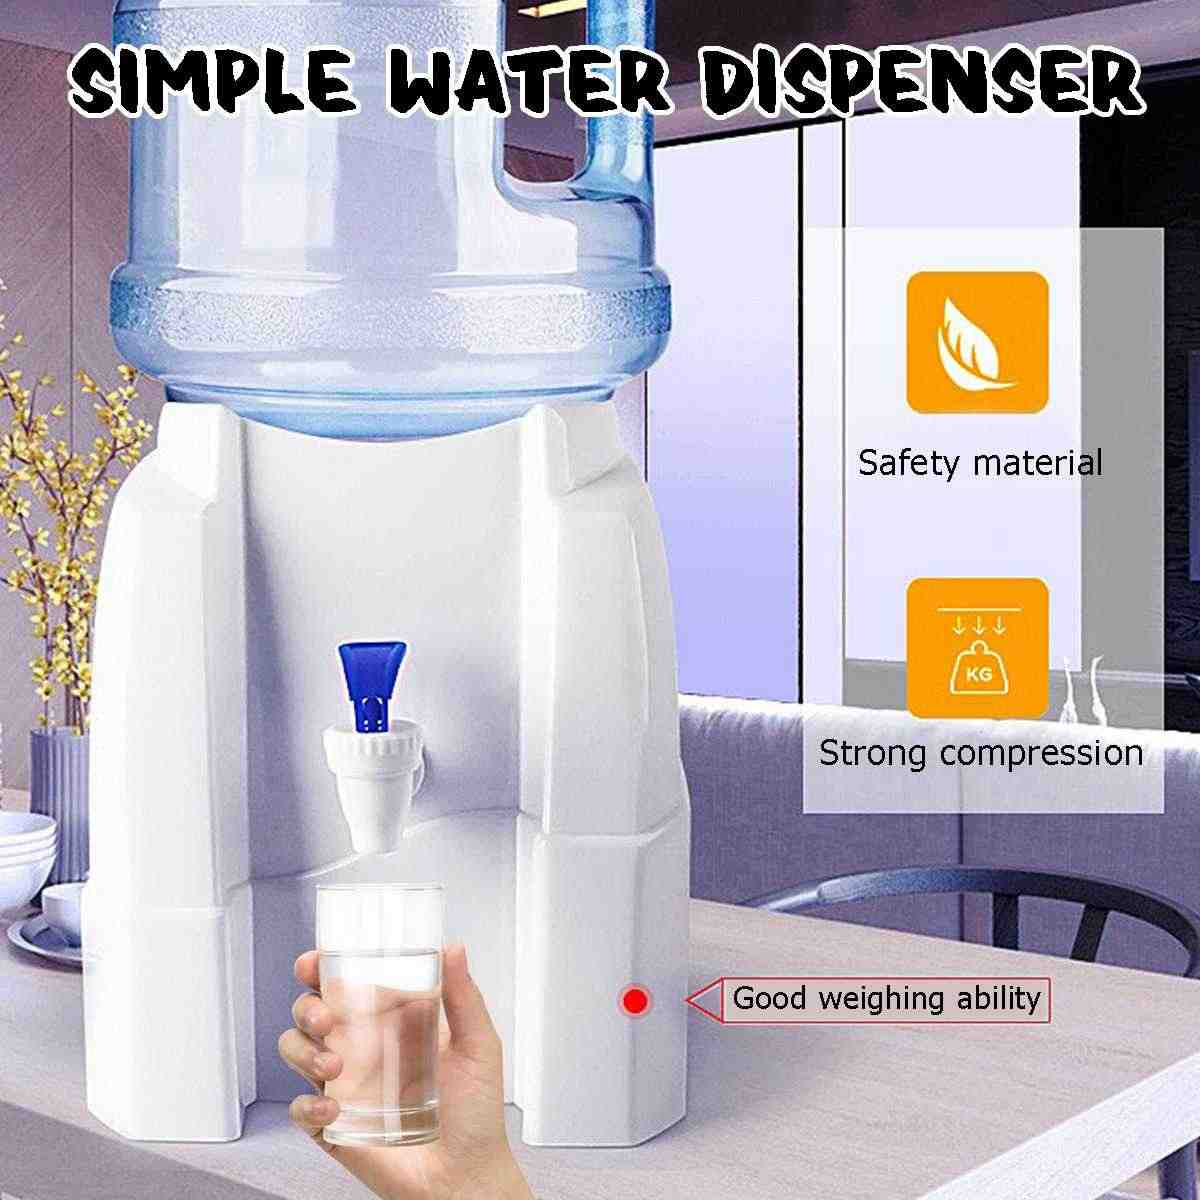 Desktop Cold Water Dispenser Portable Countertop Cooler Drinking Faucet Tool Water Holder Press Water Pumping Device For Home